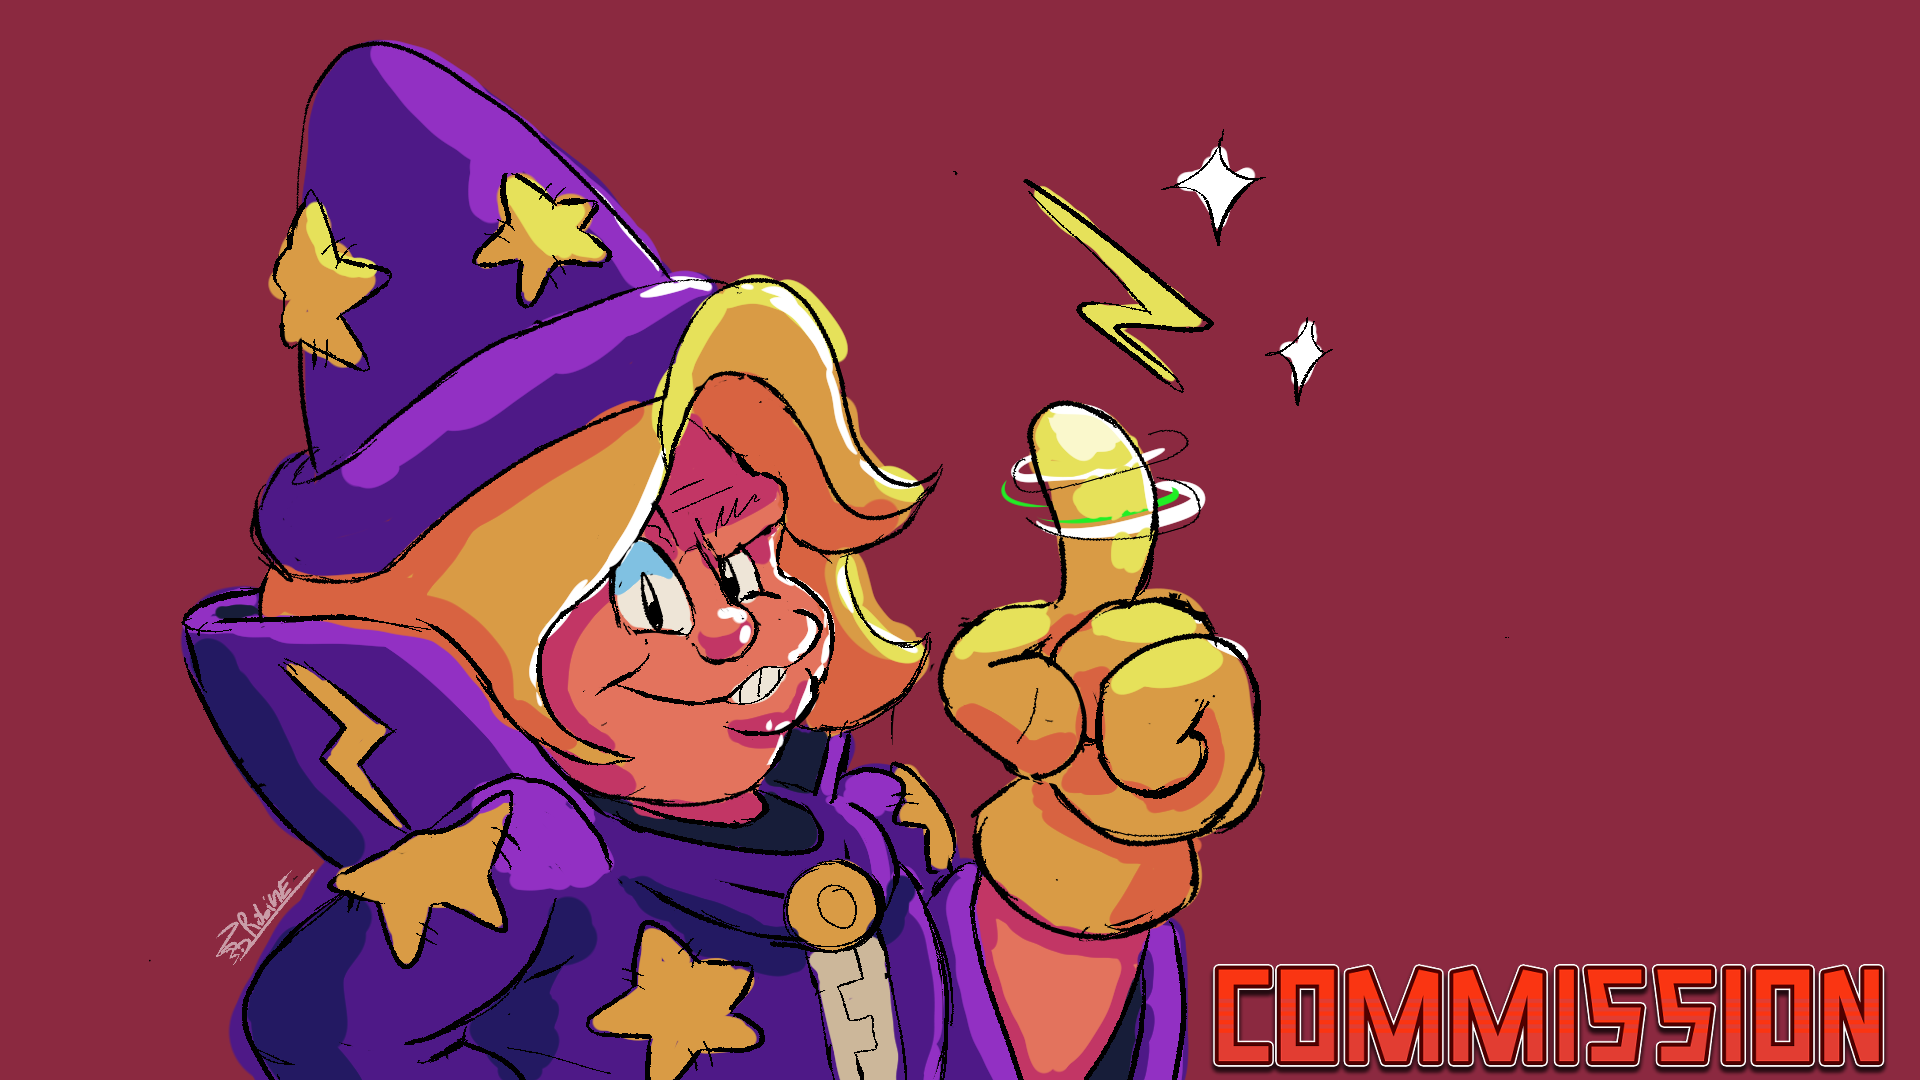 NESS the Wizard [10 dollar Commission]